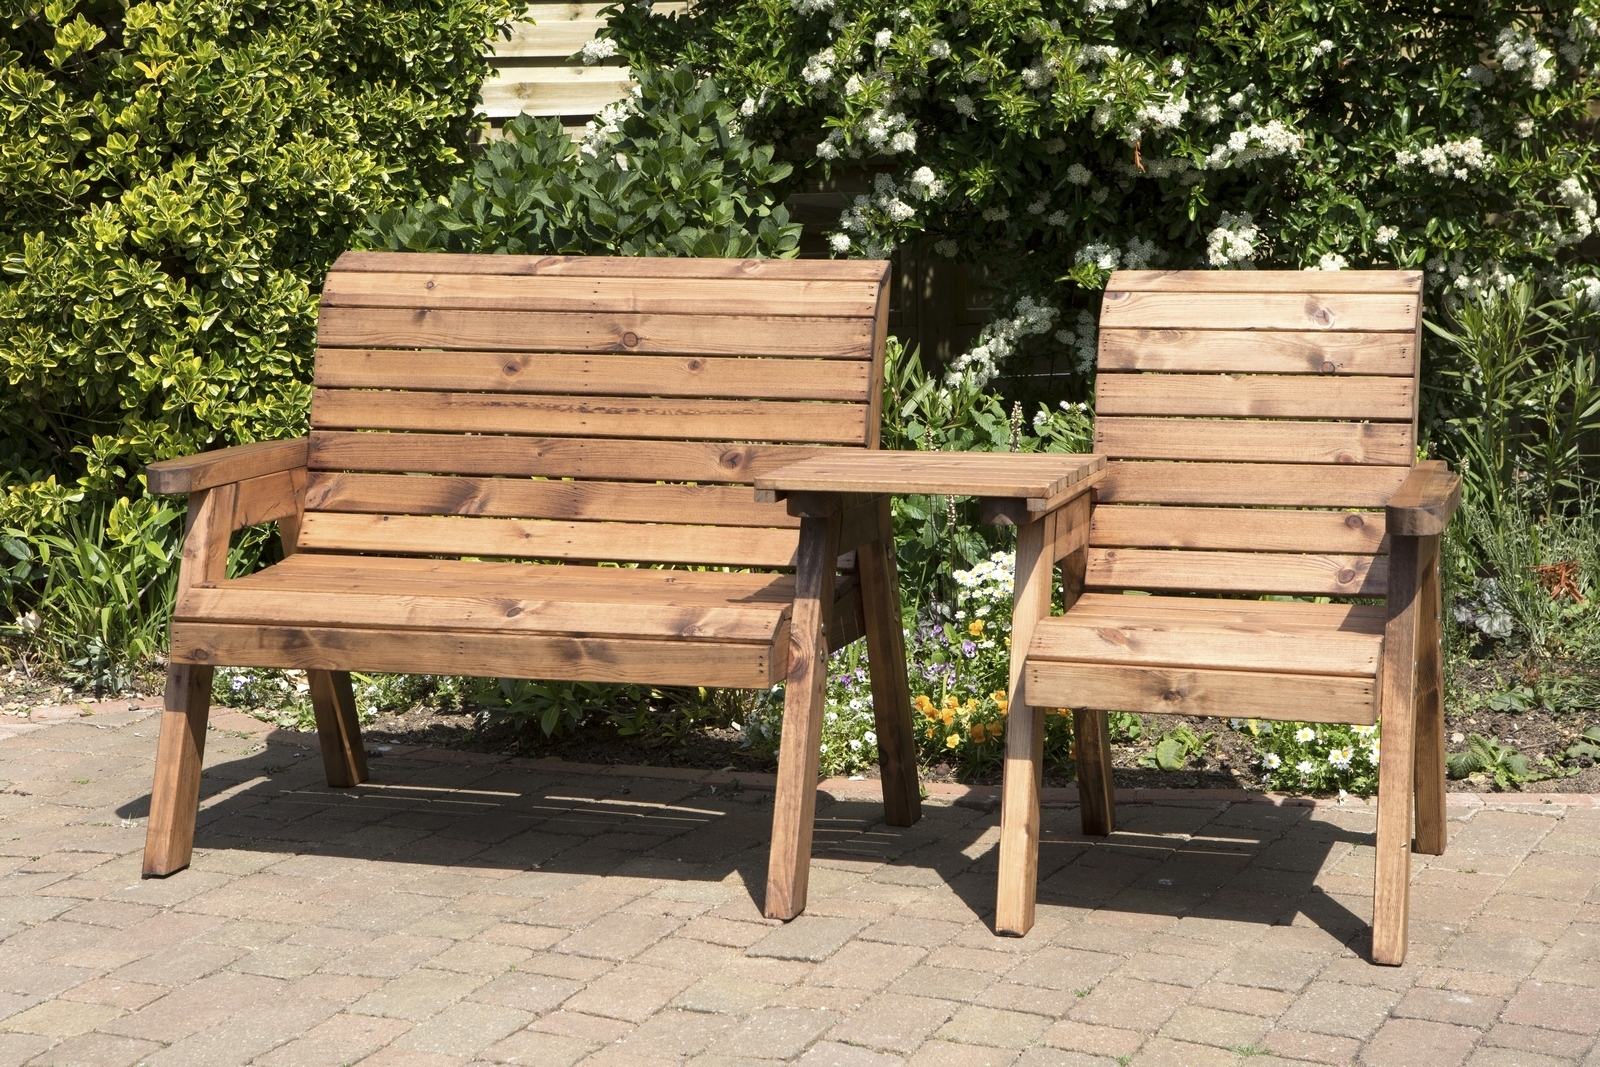 Wooden garden furniture uk made fully assembled heavy duty wooden garden love bench with FHGTHDD